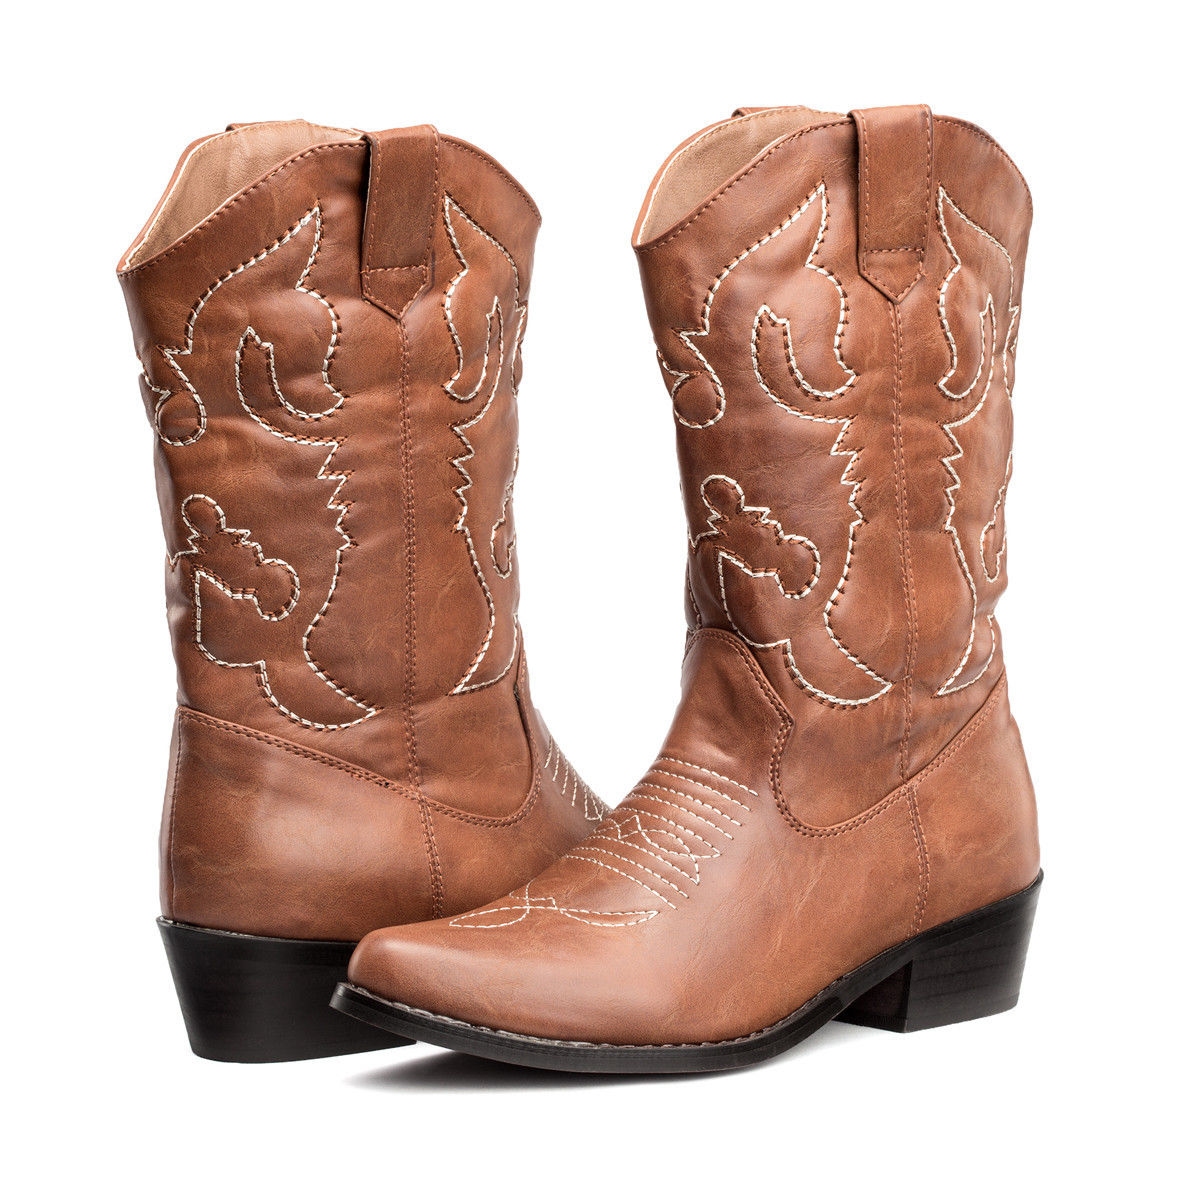 6d47b74fc0c Details about FREE SHIP Womens Cowboy Boots R Toe Western Wedding Shoes Mid  Calf US Size 6-11